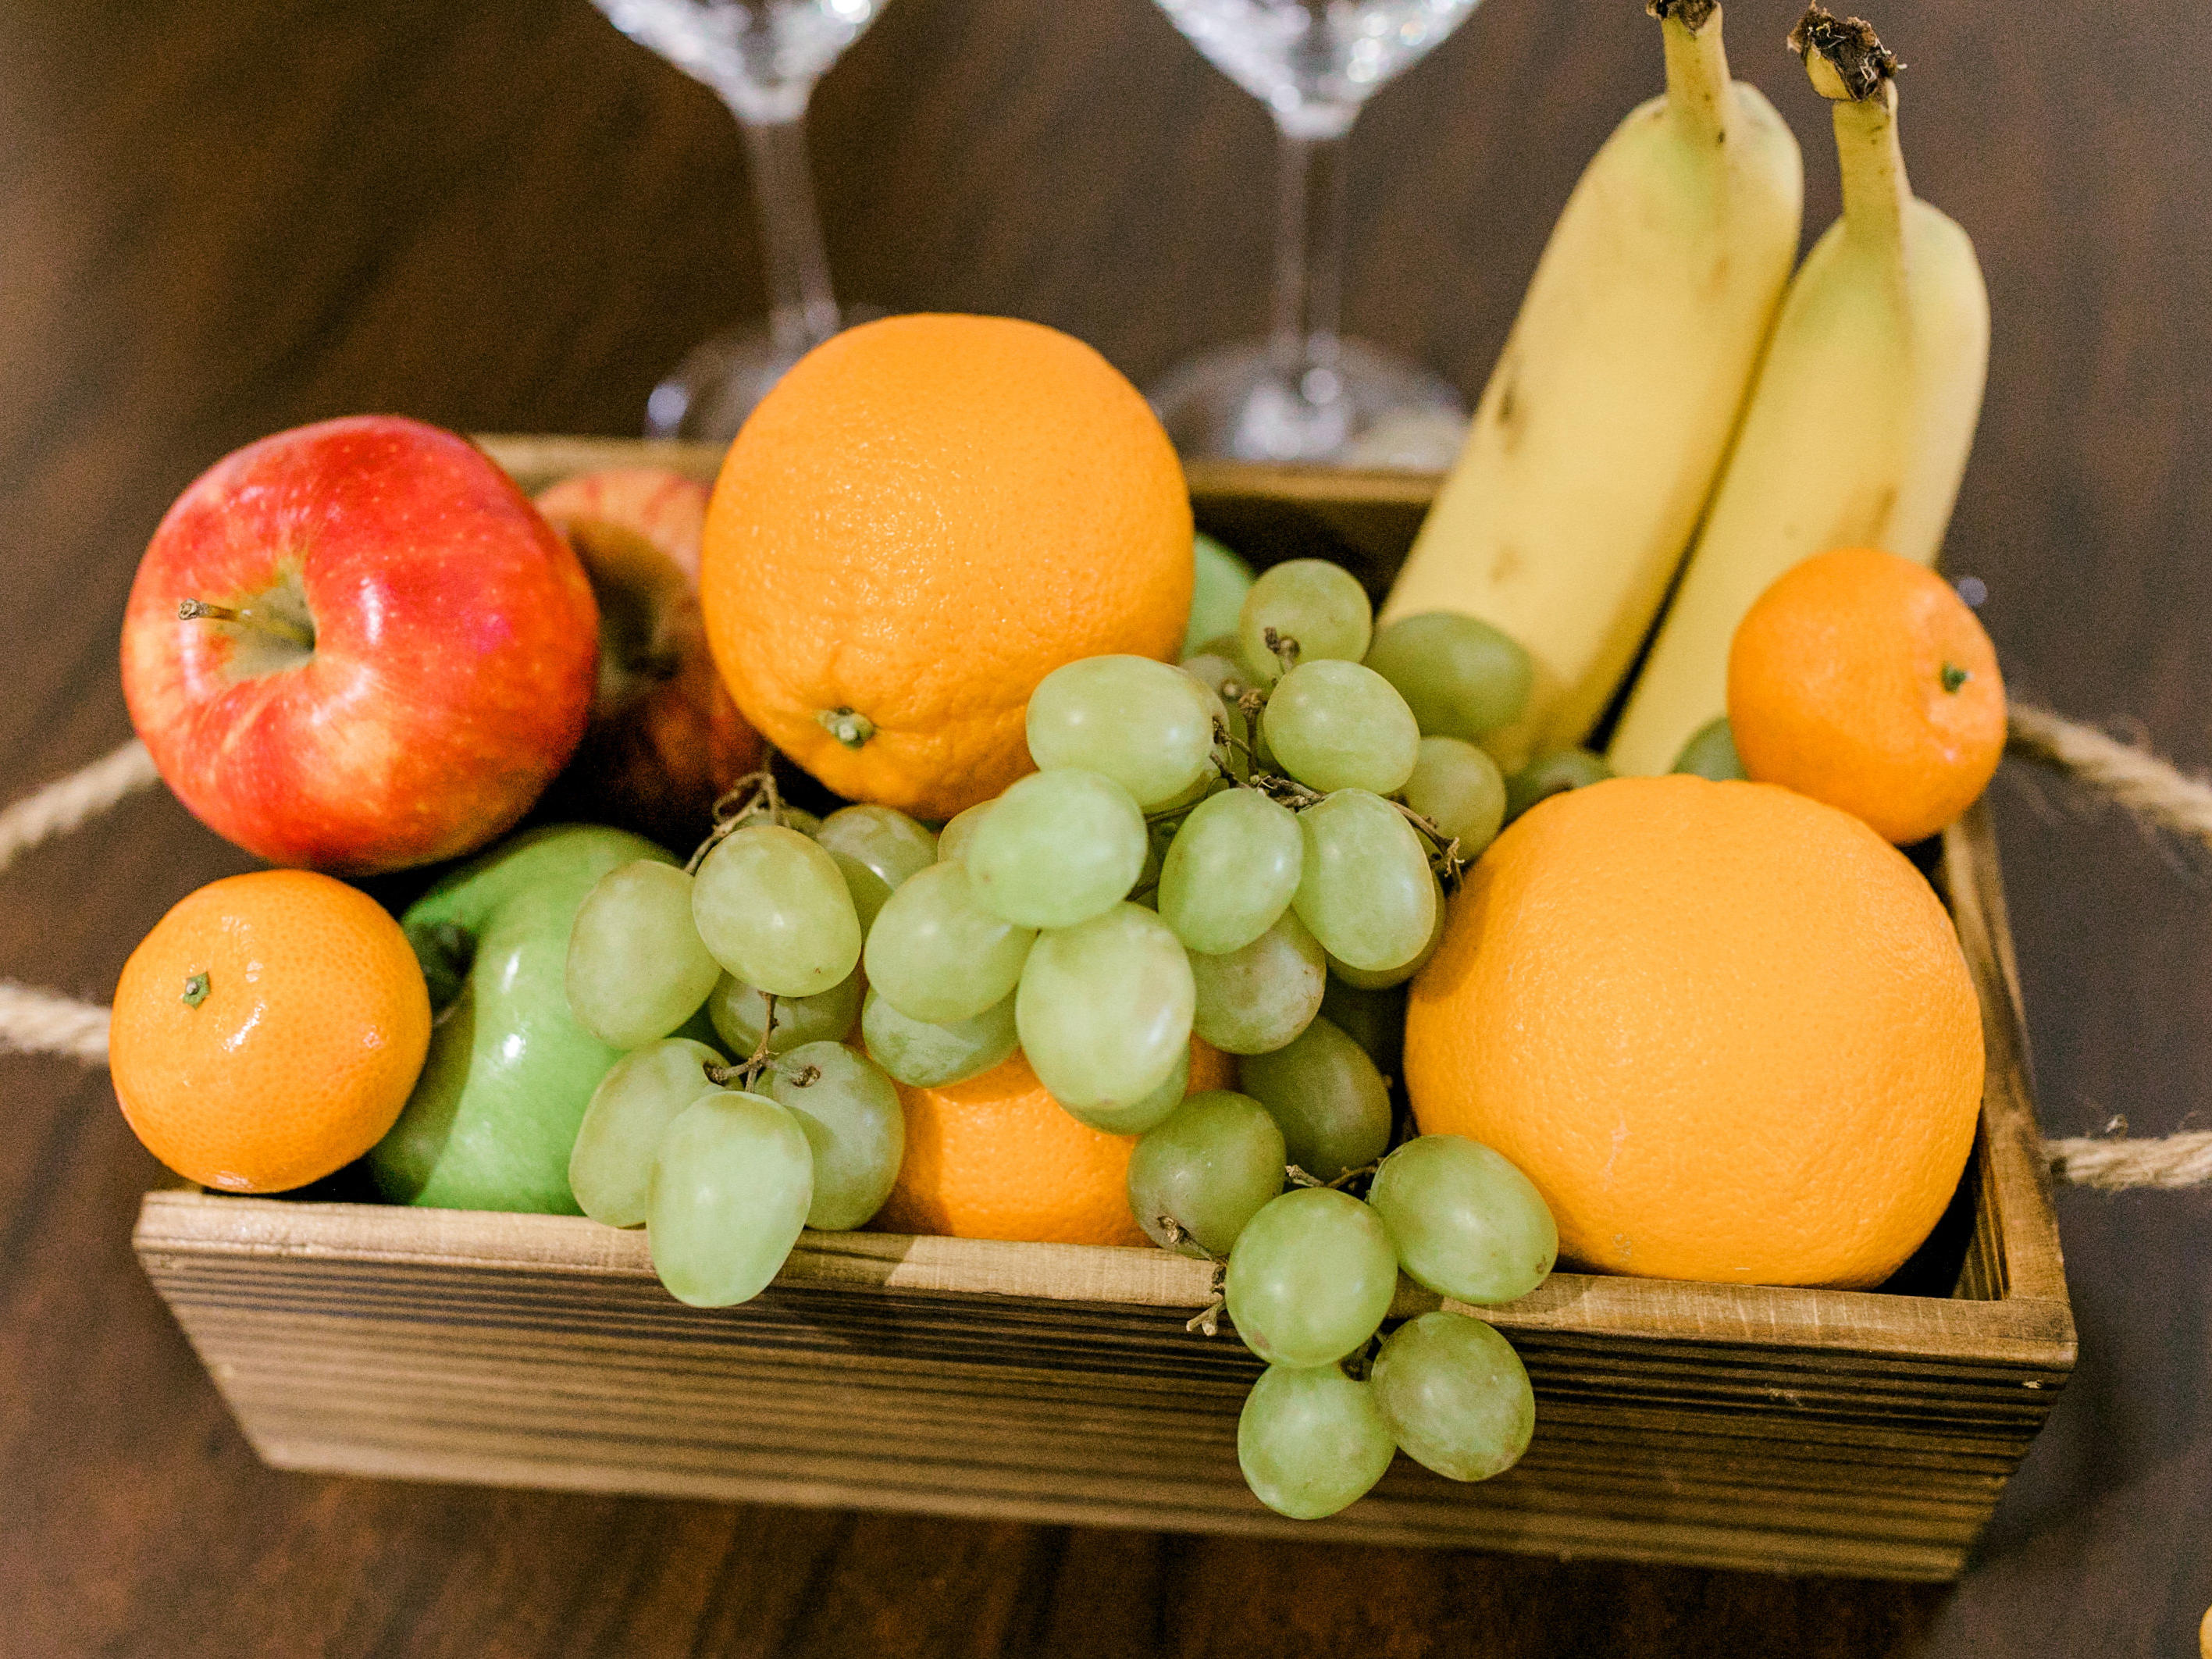 basket of fruit and wine glasses on table